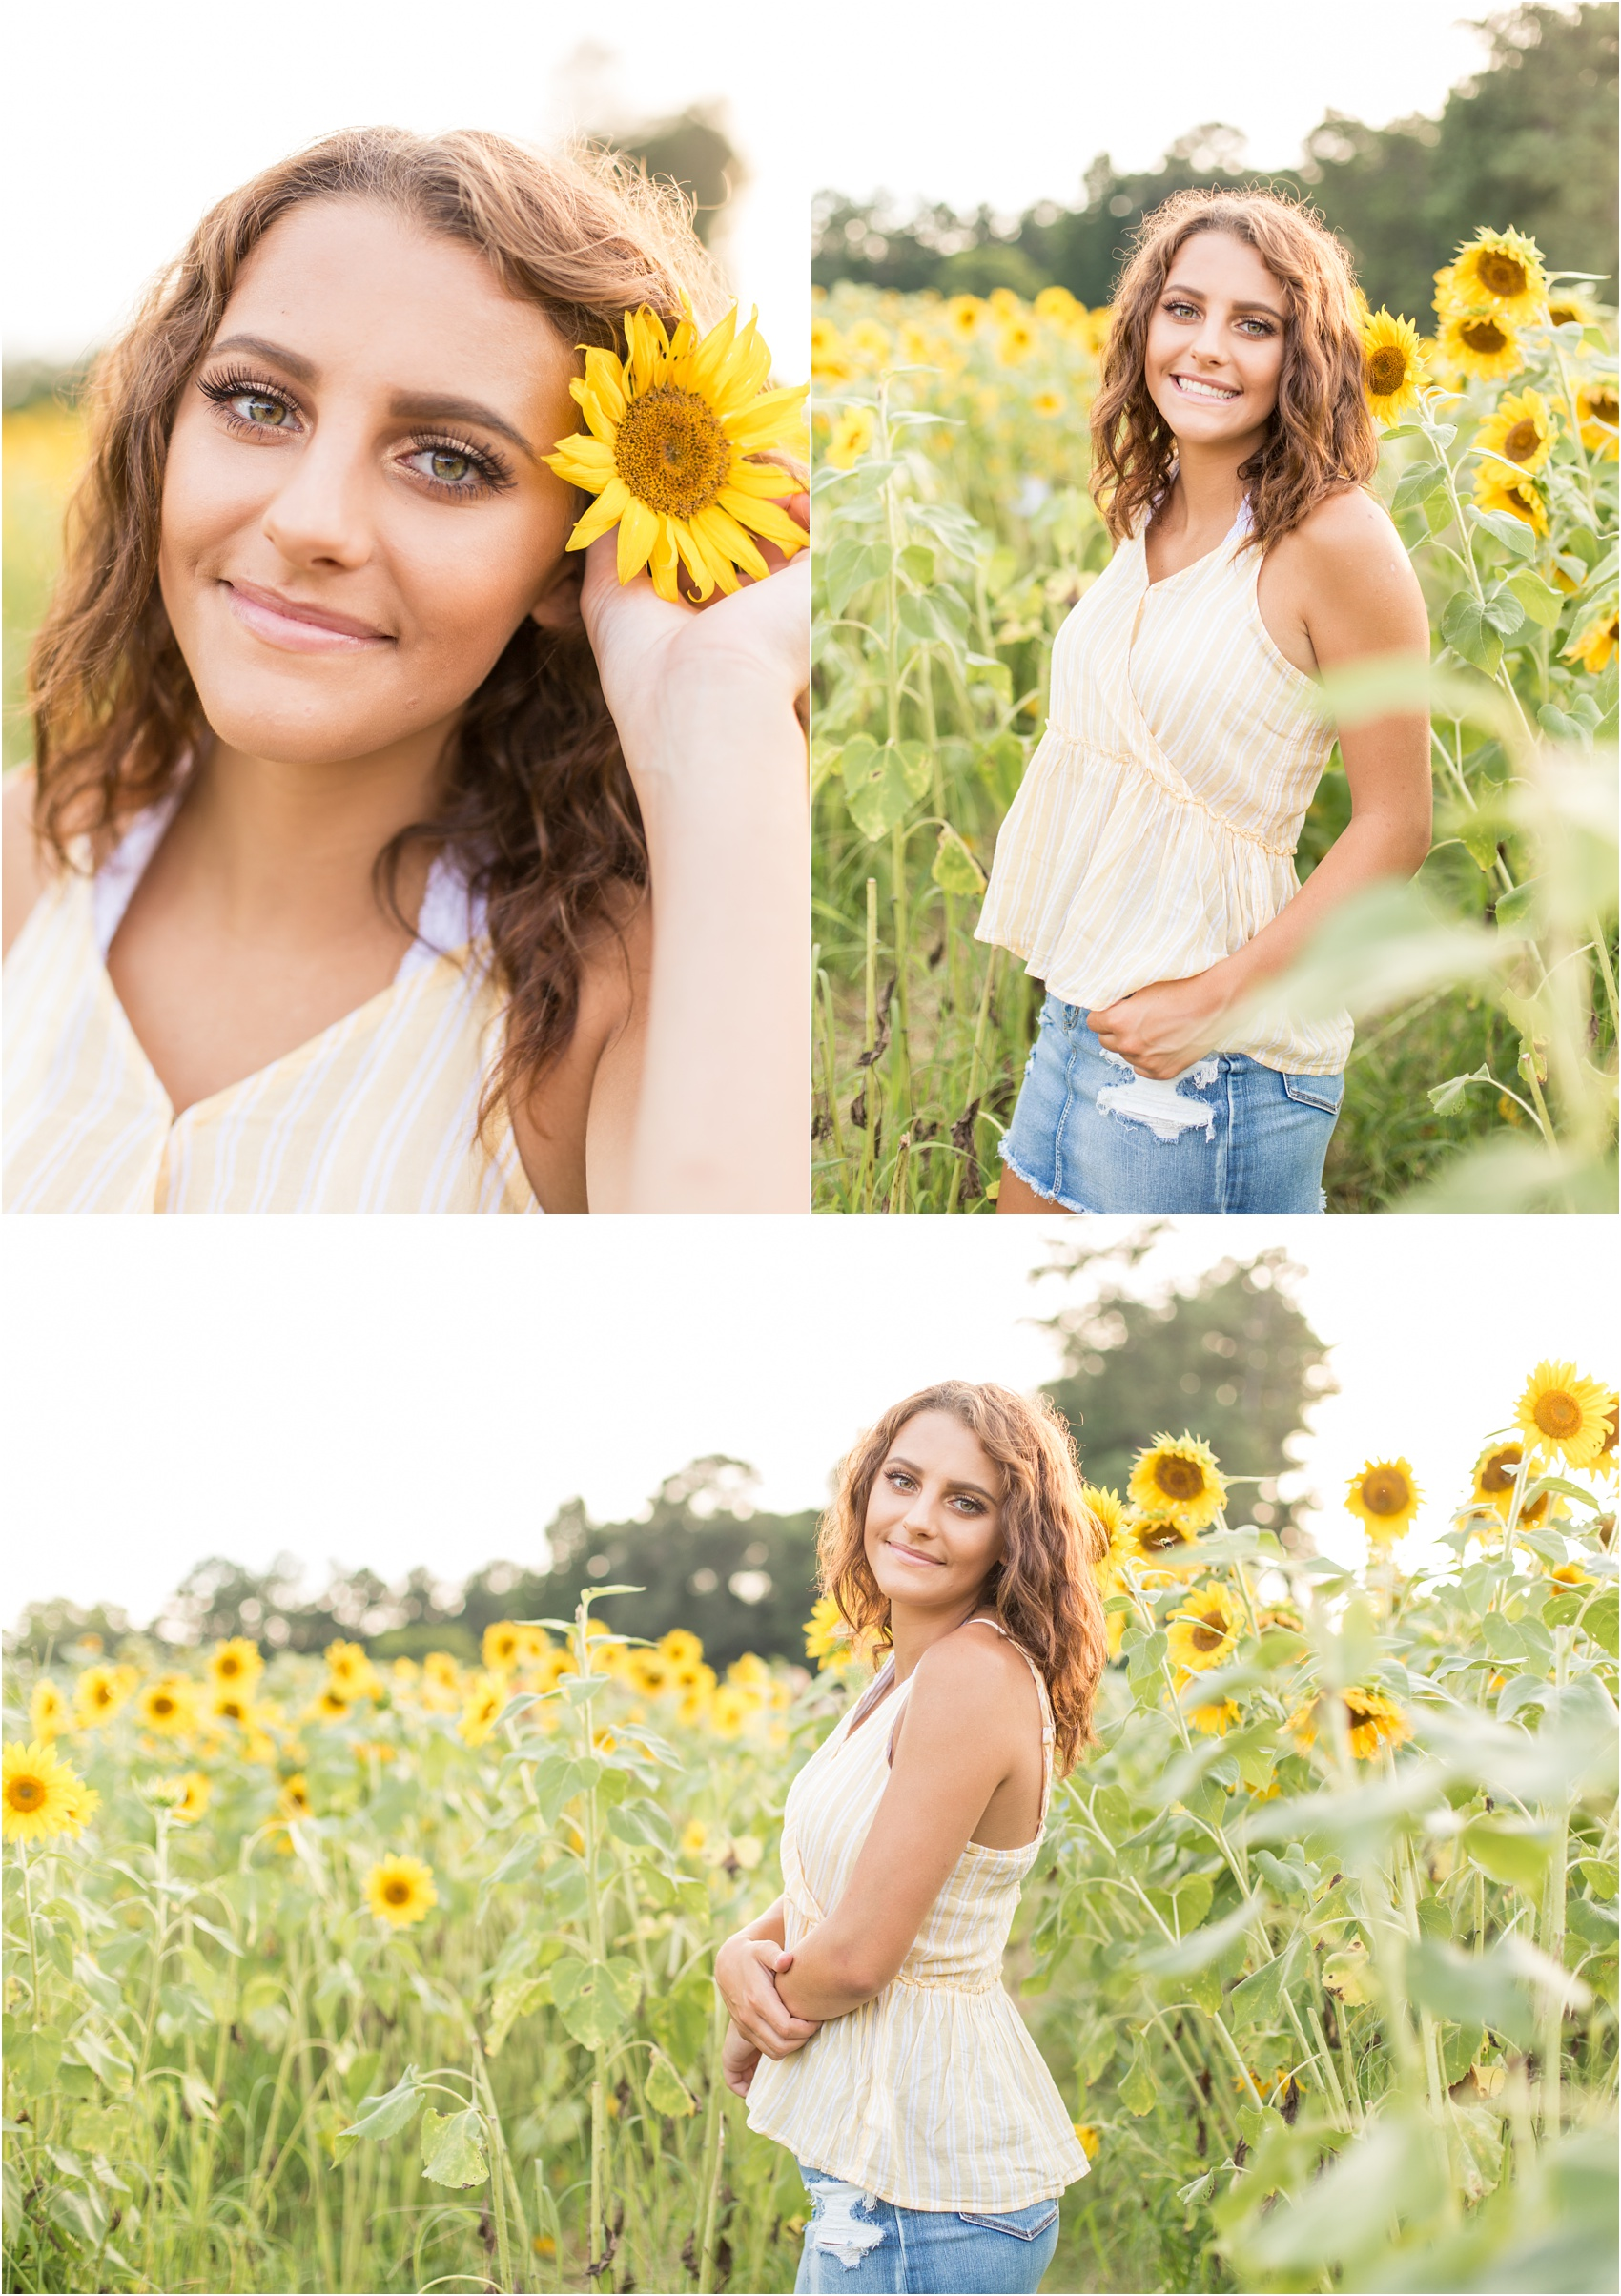 Savannah Eve Photography- Ashley Baysden- Class of 2019-69.jpg